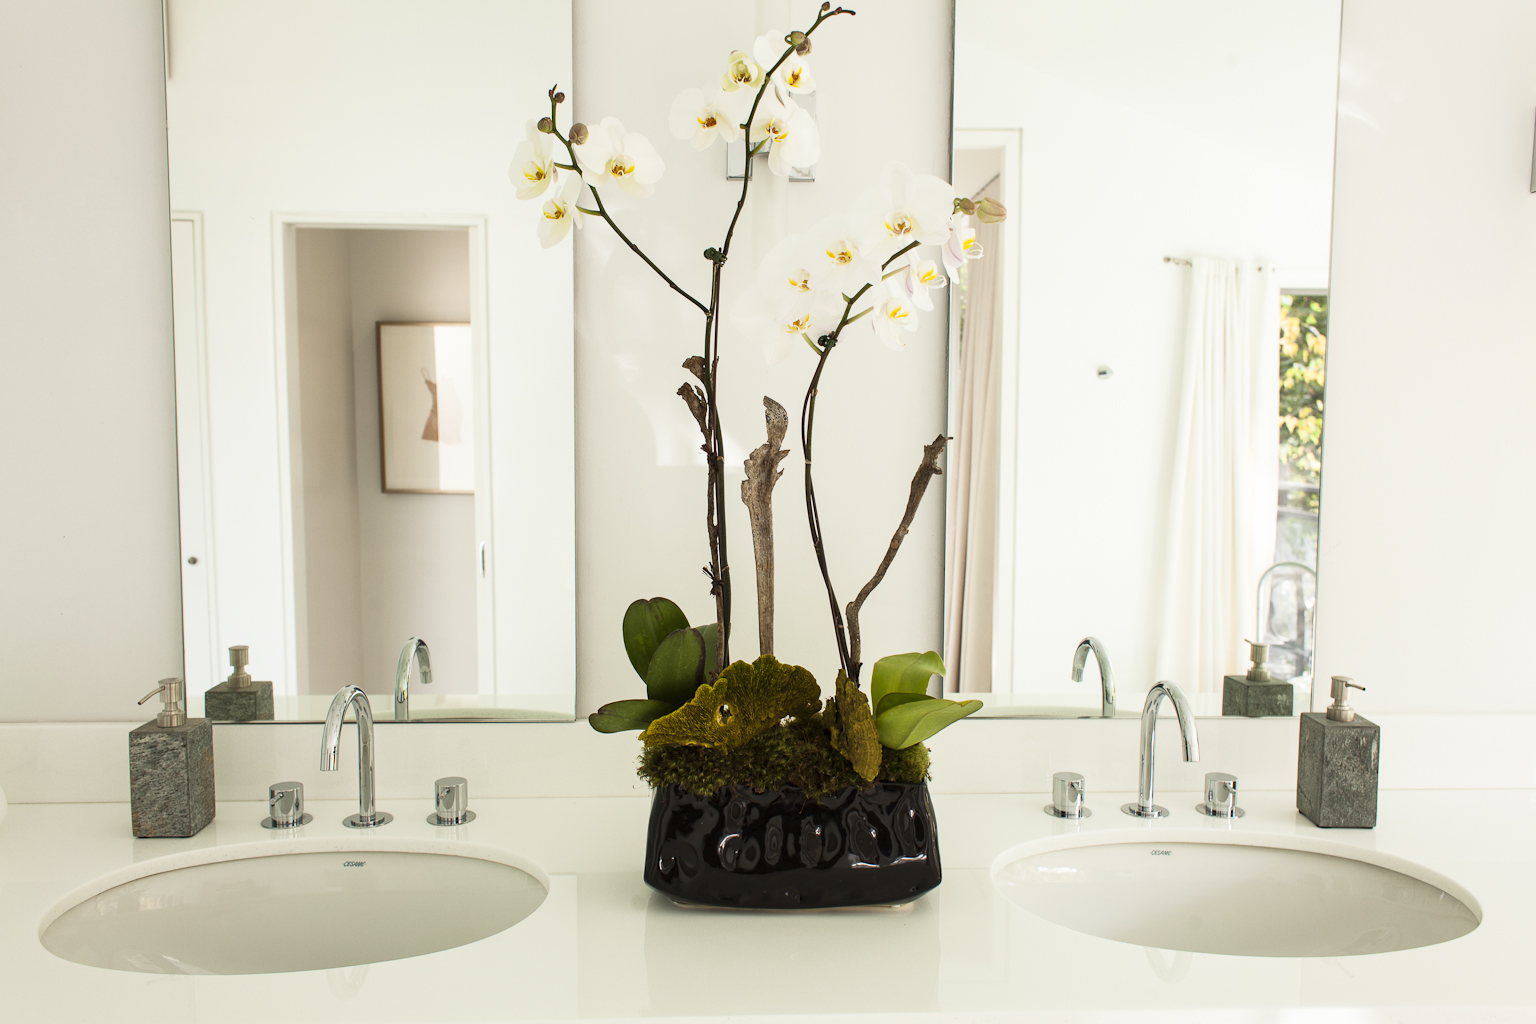 Fresh floral leaves this bathroom feeling hotel chic and inviting.